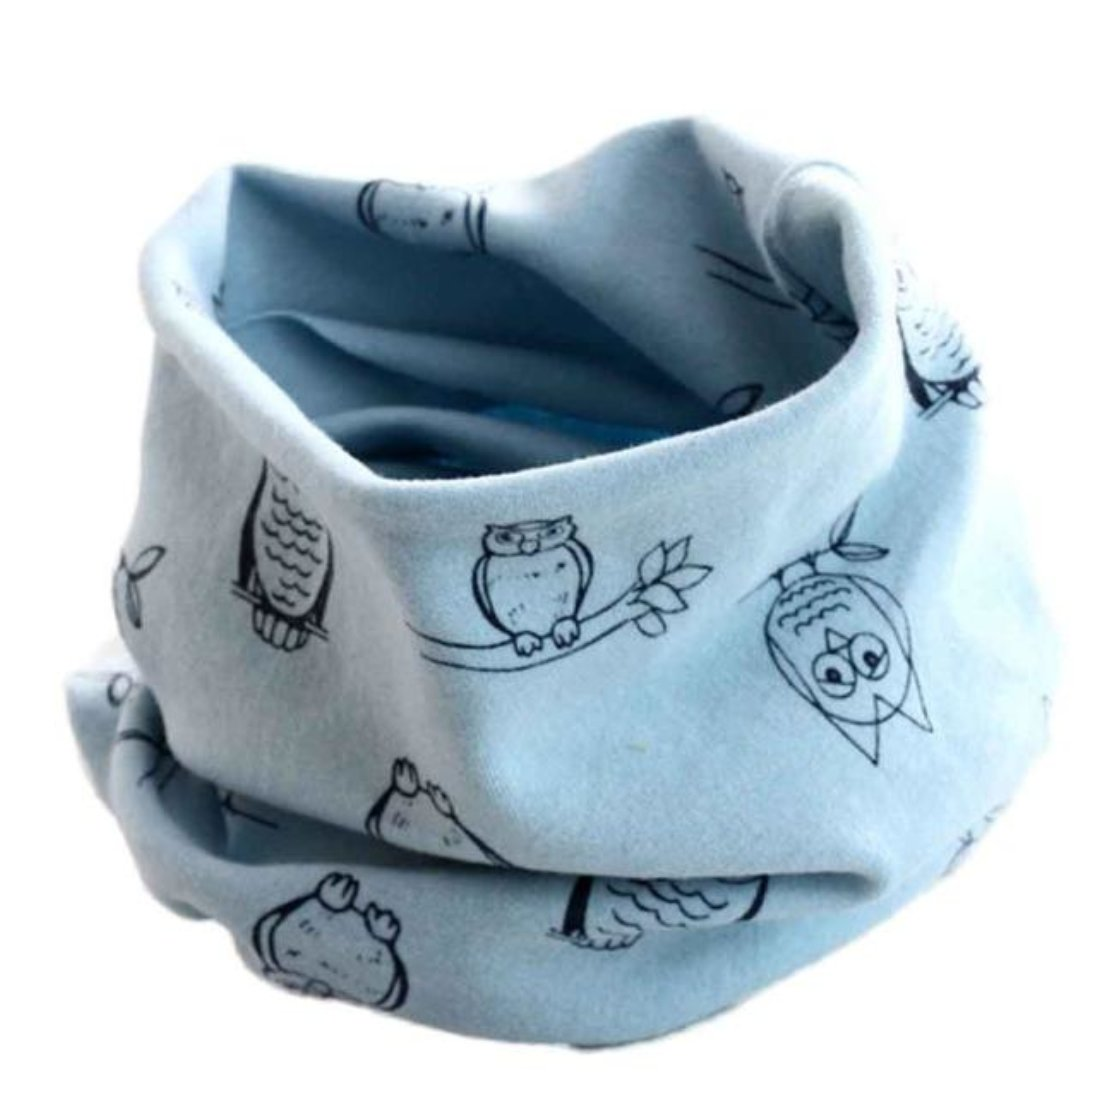 Voberry Autumn Winter Unisex Baby Toddler Kids Warm Neck Warmer Wrap Shawl Scarves YXP60824643BU_QMJ